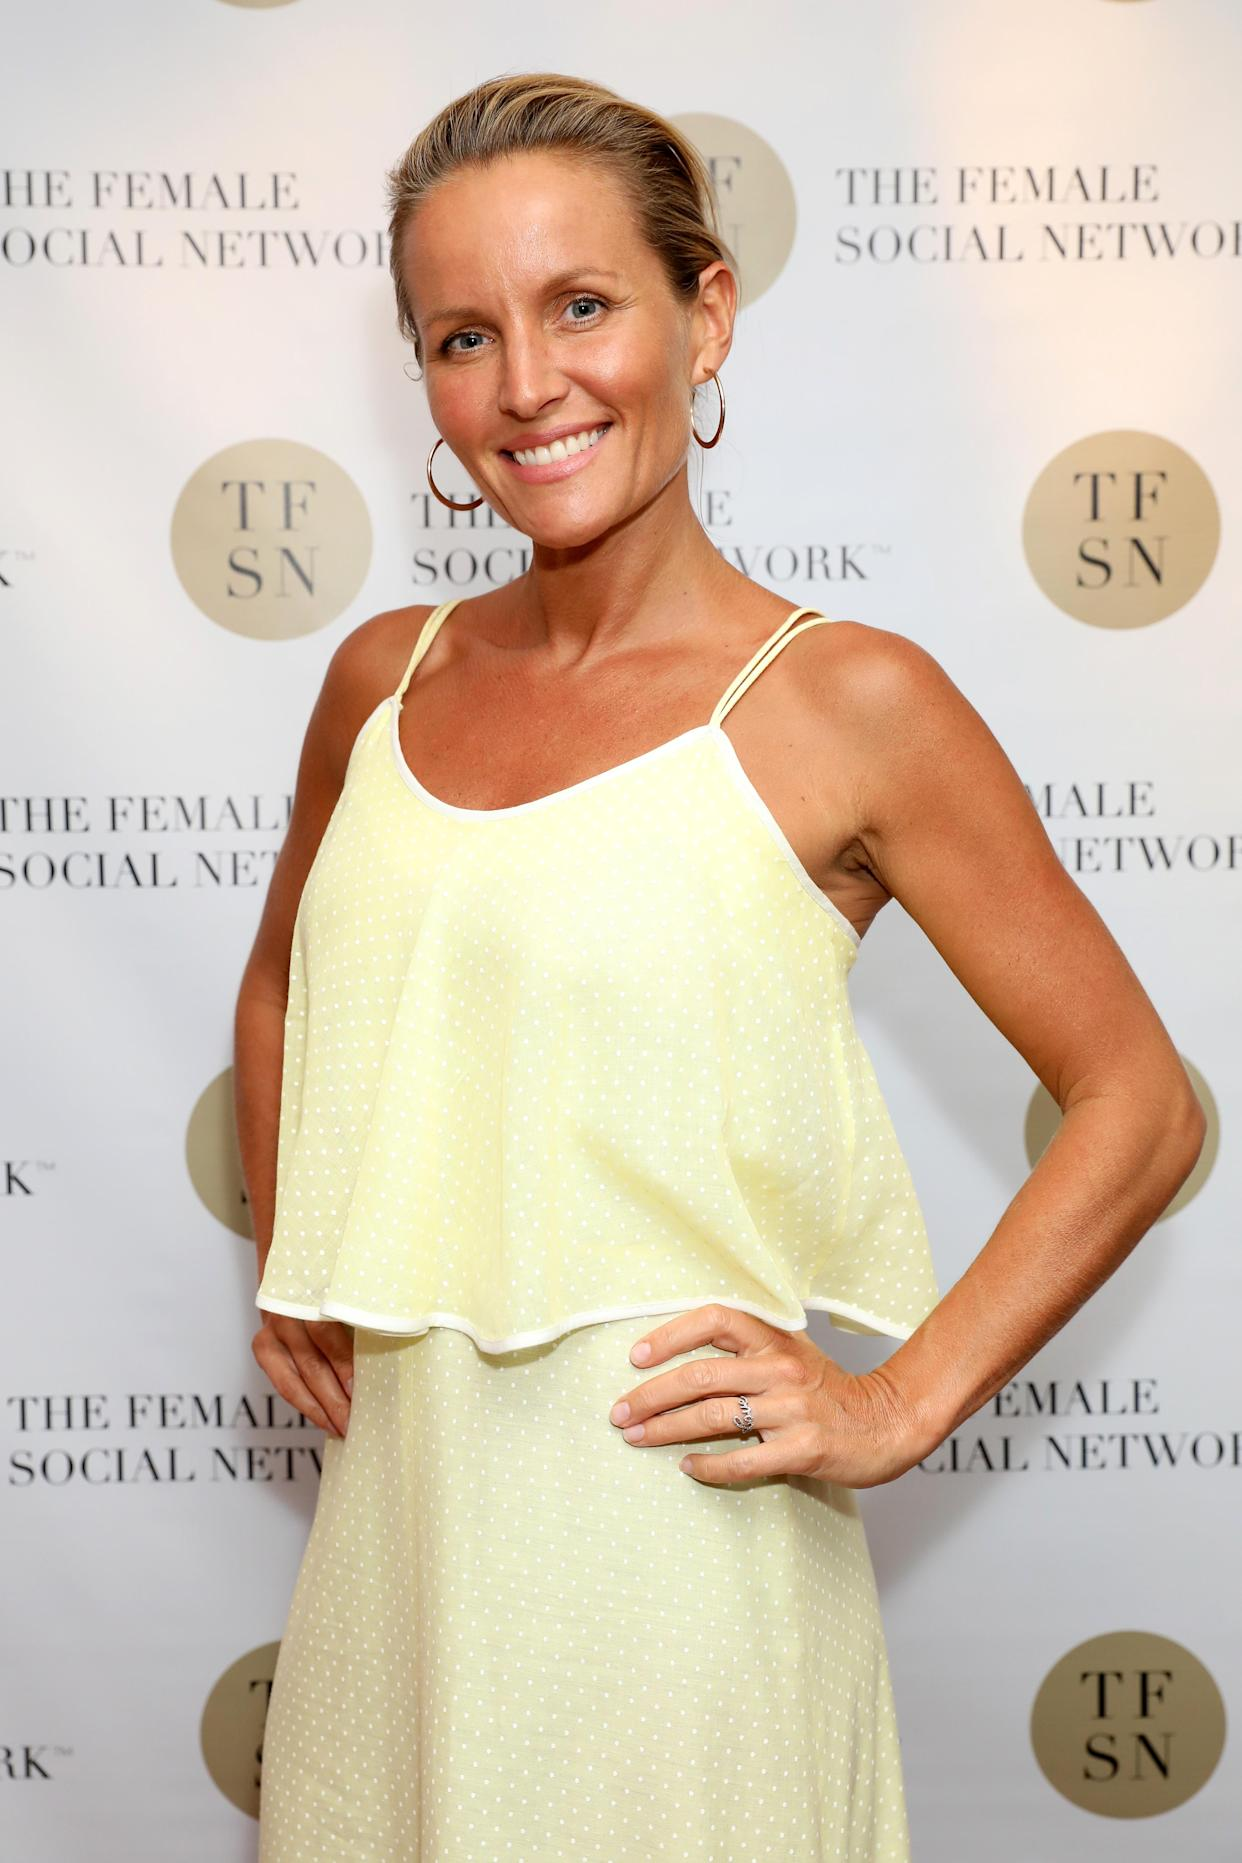 LONDON, ENGLAND - JUNE 26: Davinia Taylor attends the UK launch of The Female Social Network at The Ivy on June 26, 2019 in London, England. (Photo by David M. Benett/Dave Benett/Getty Images for The Female Social Network (TFSN))